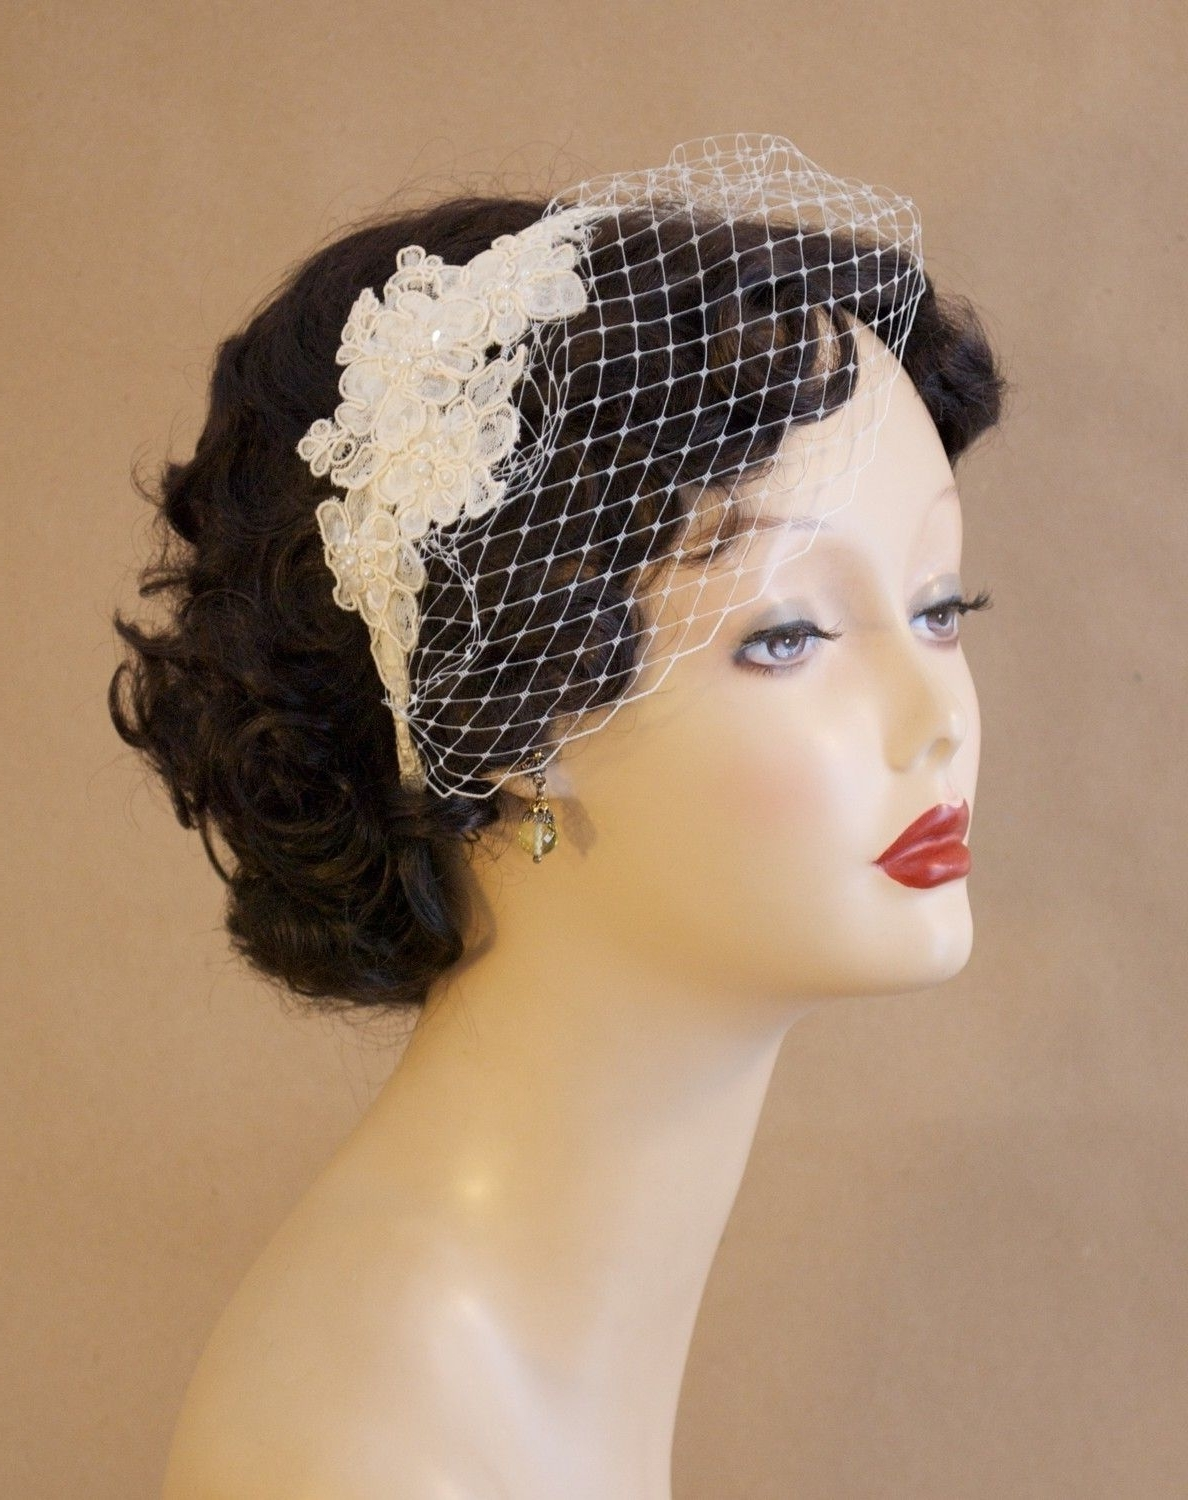 Popular Wedding Hairstyles For Short Hair With Birdcage Veil For Bridal Birdcage Veil Blusher With Alencon Lace, Bead, And Sequin (View 2 of 15)